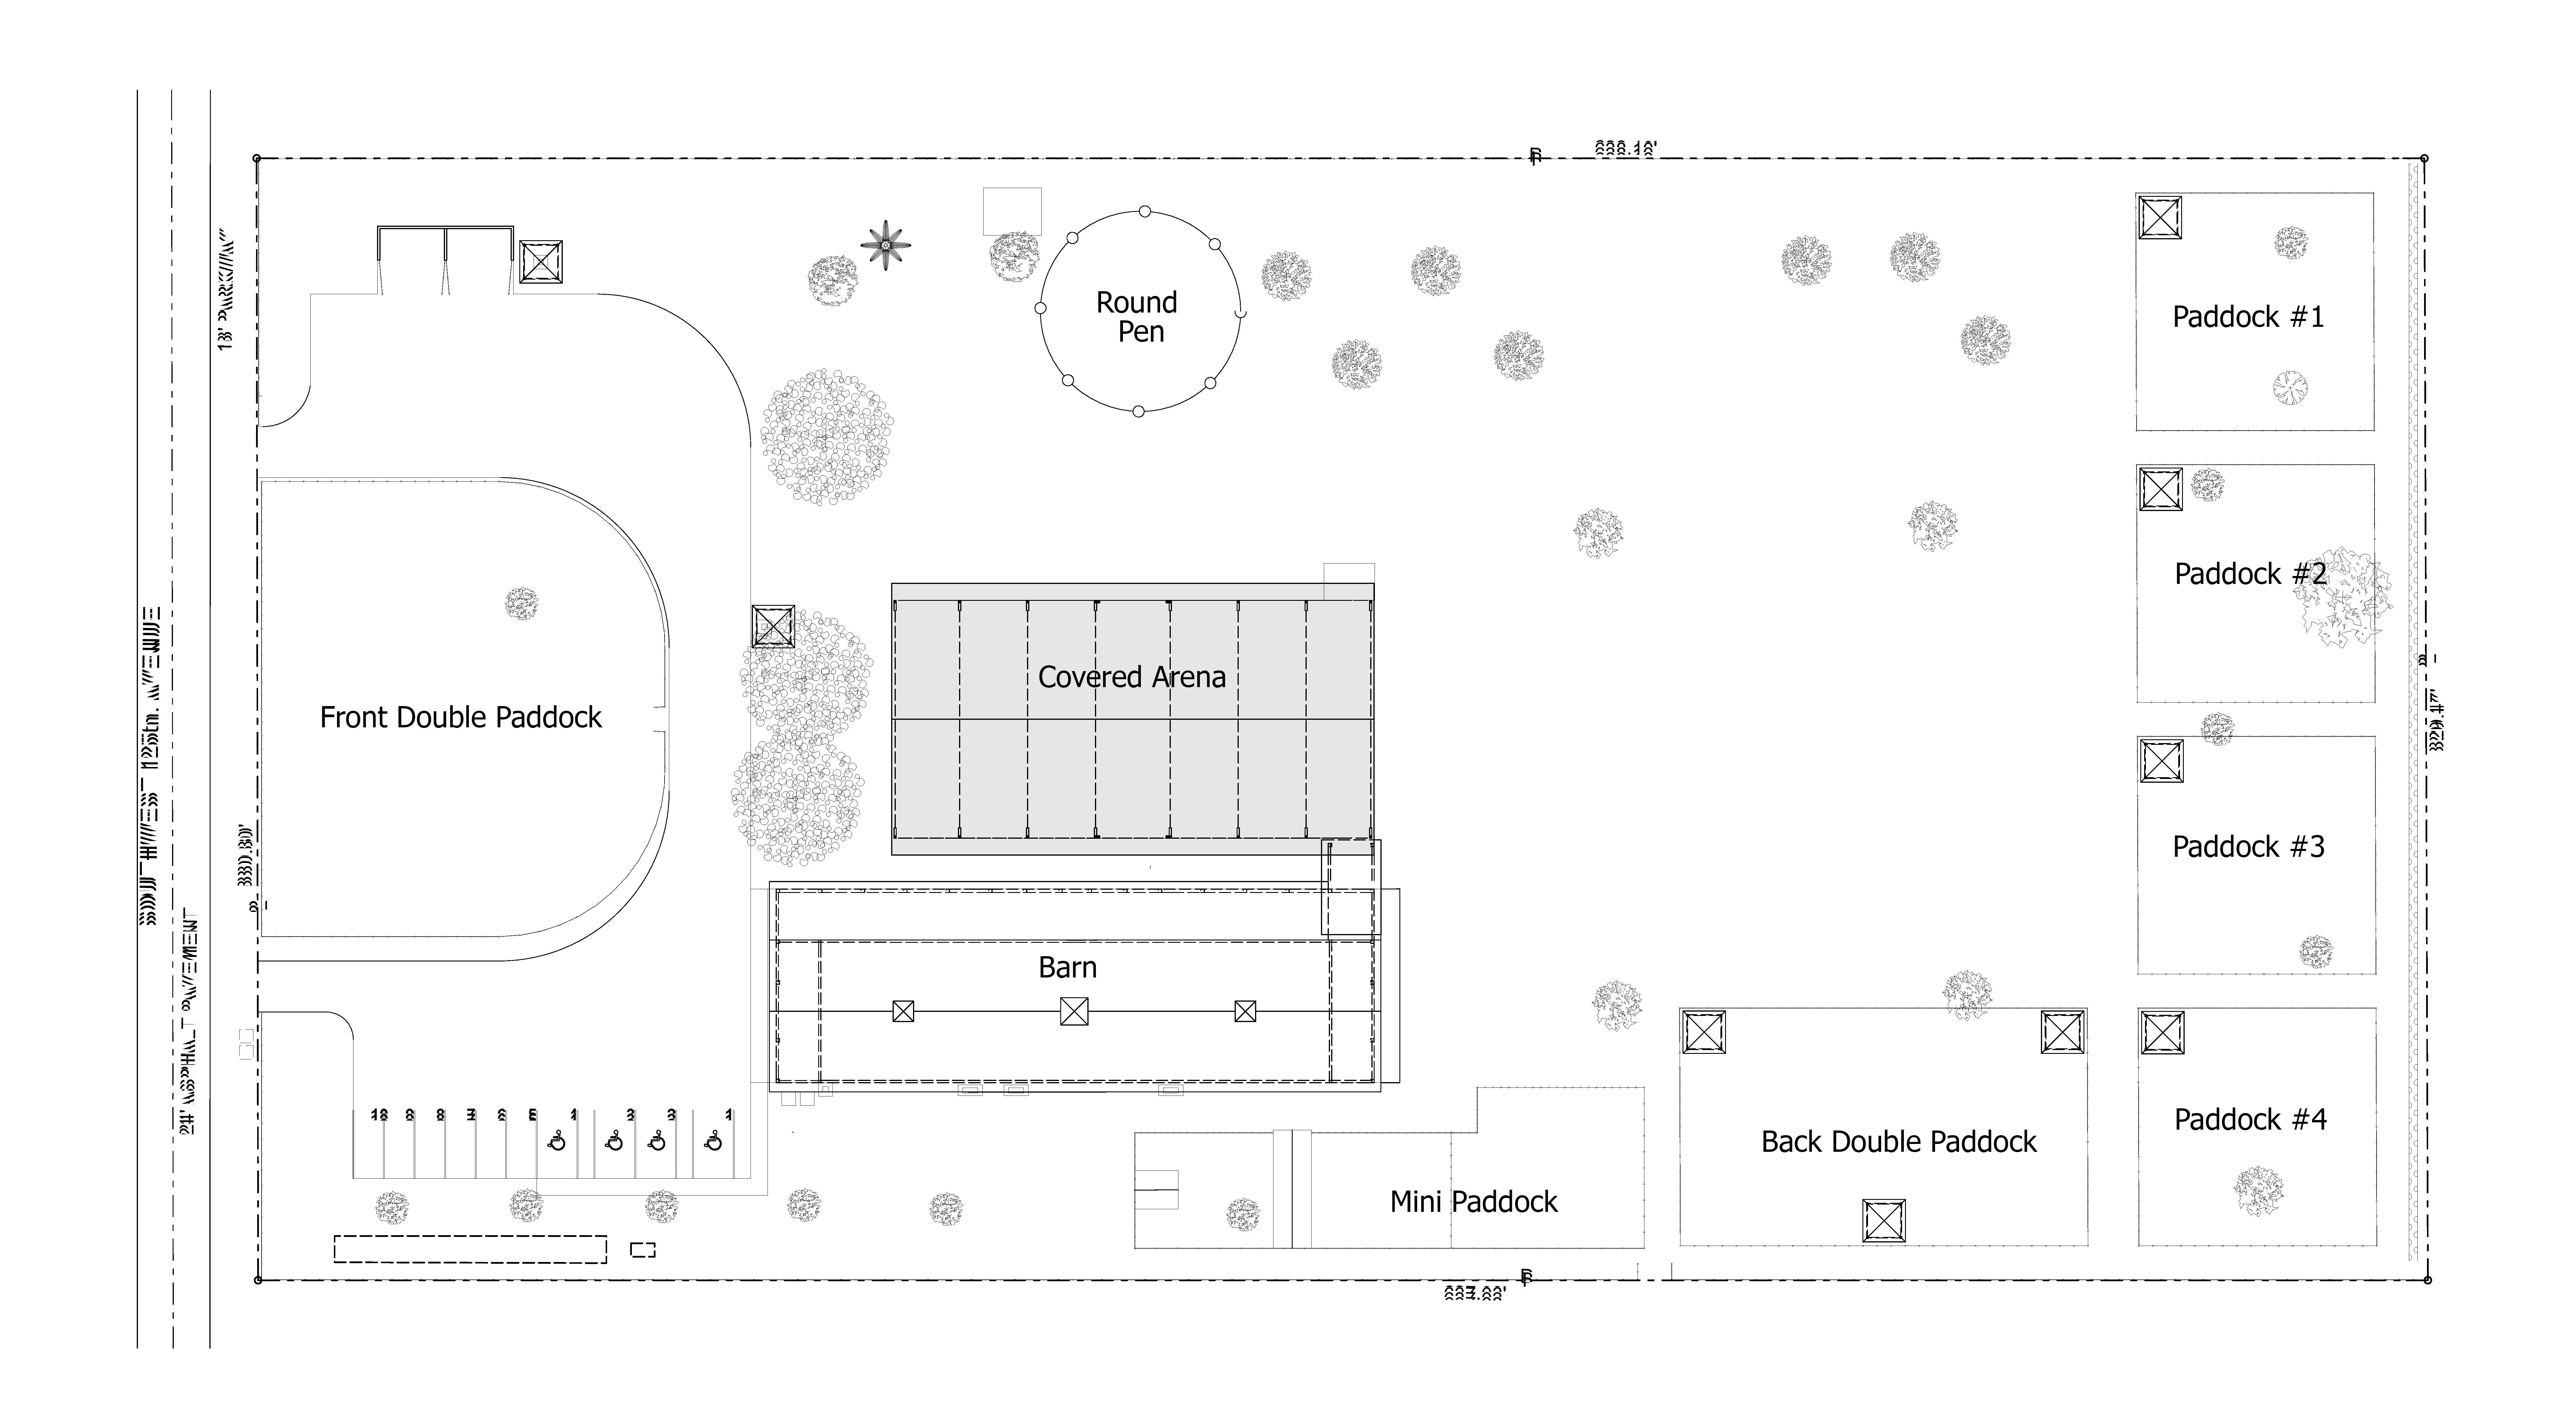 Simple Site Plan : Simple site plan labeled whispering manes therapeutic